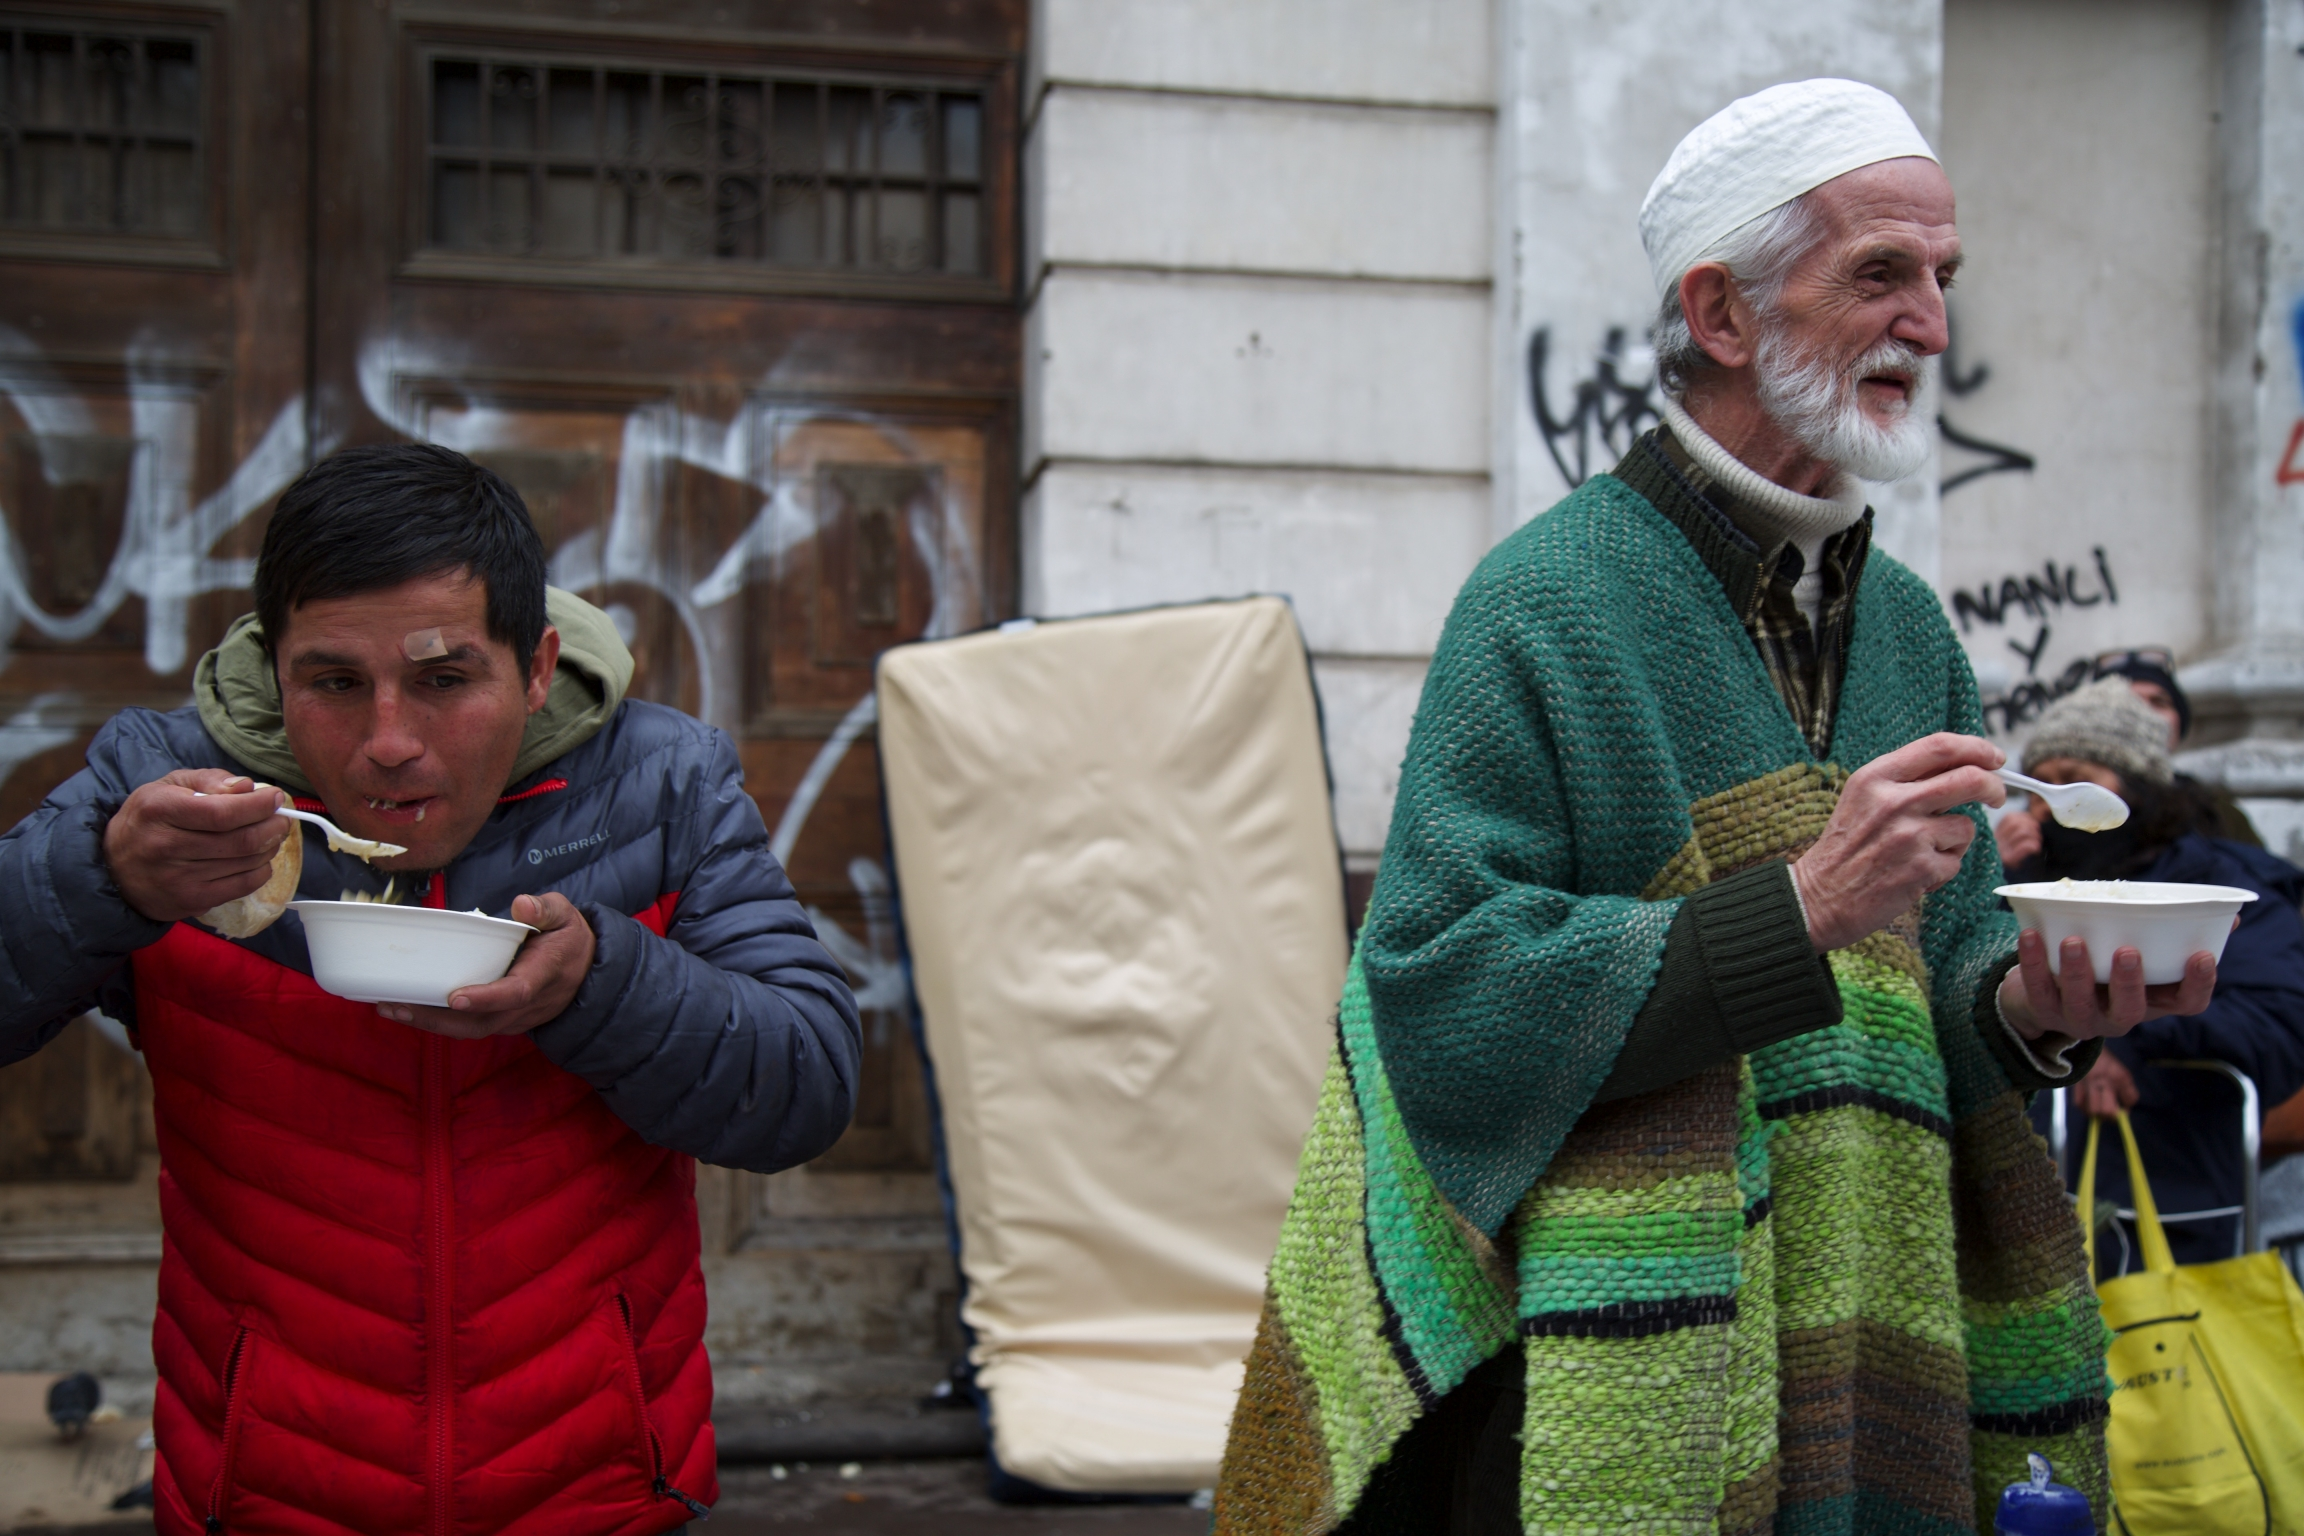 Chilean Muslims and people from other religious communities eatinga meal from bowls, outsideat the weekly soup kitchen in Santiago, Chile.